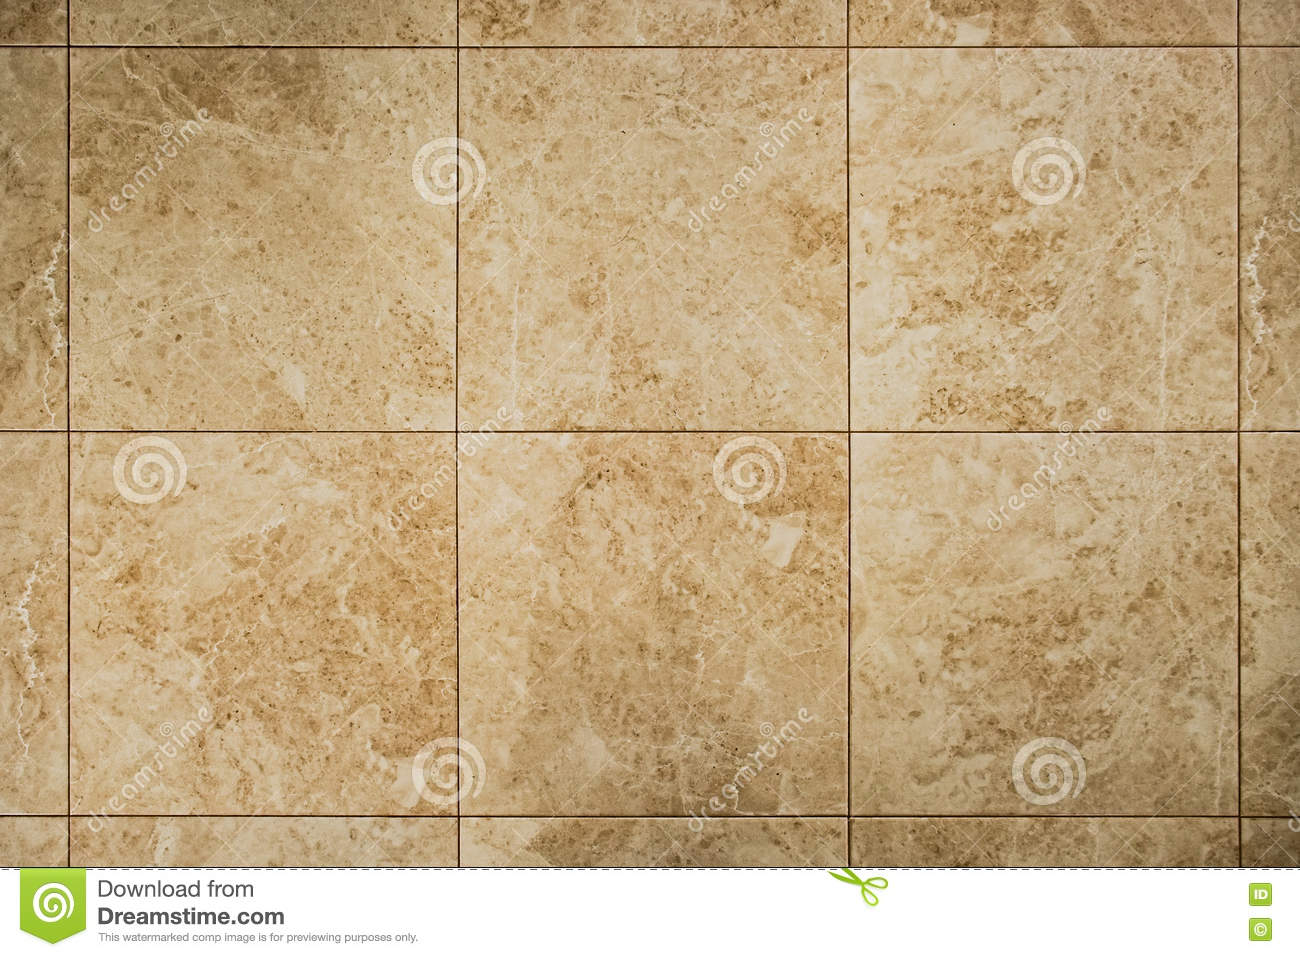 Ceramic Tile Pattern For Floor Or Wall Stock Photo - Image of ...